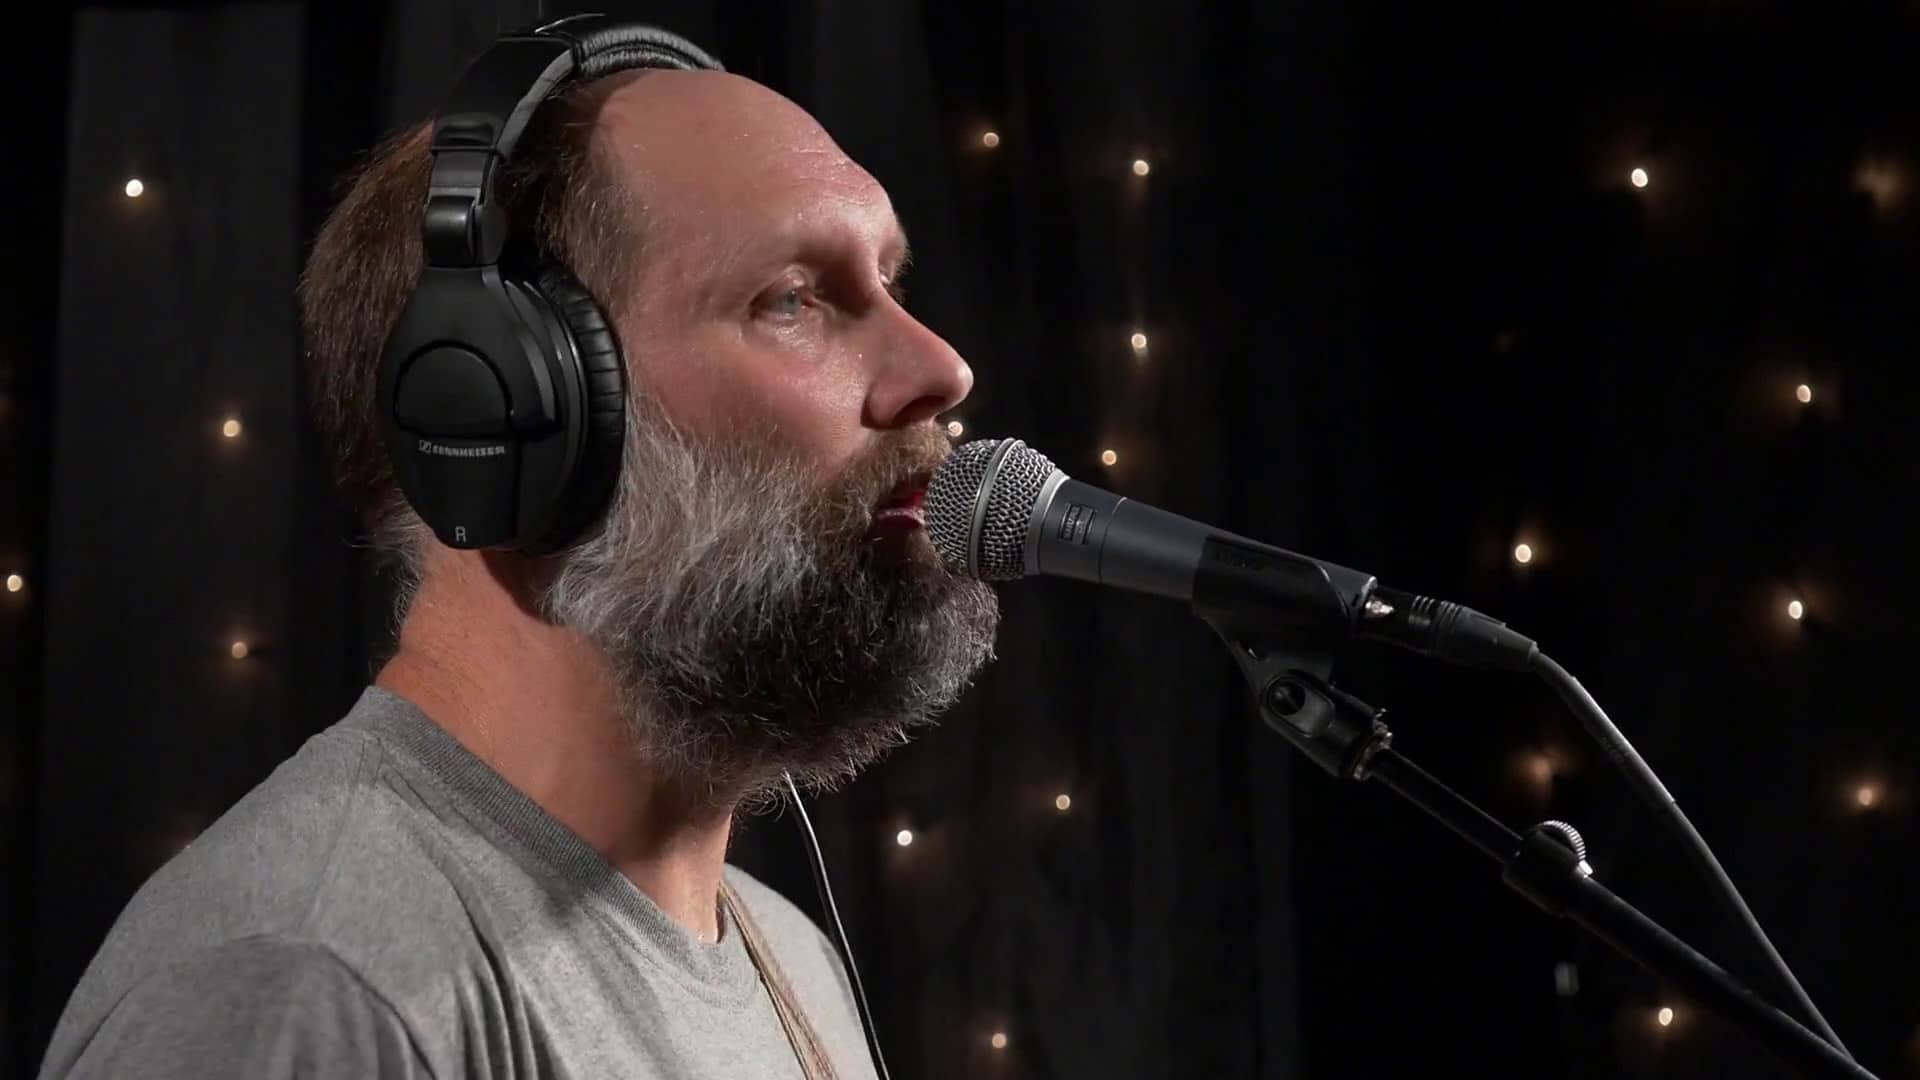 Built To Spill - So